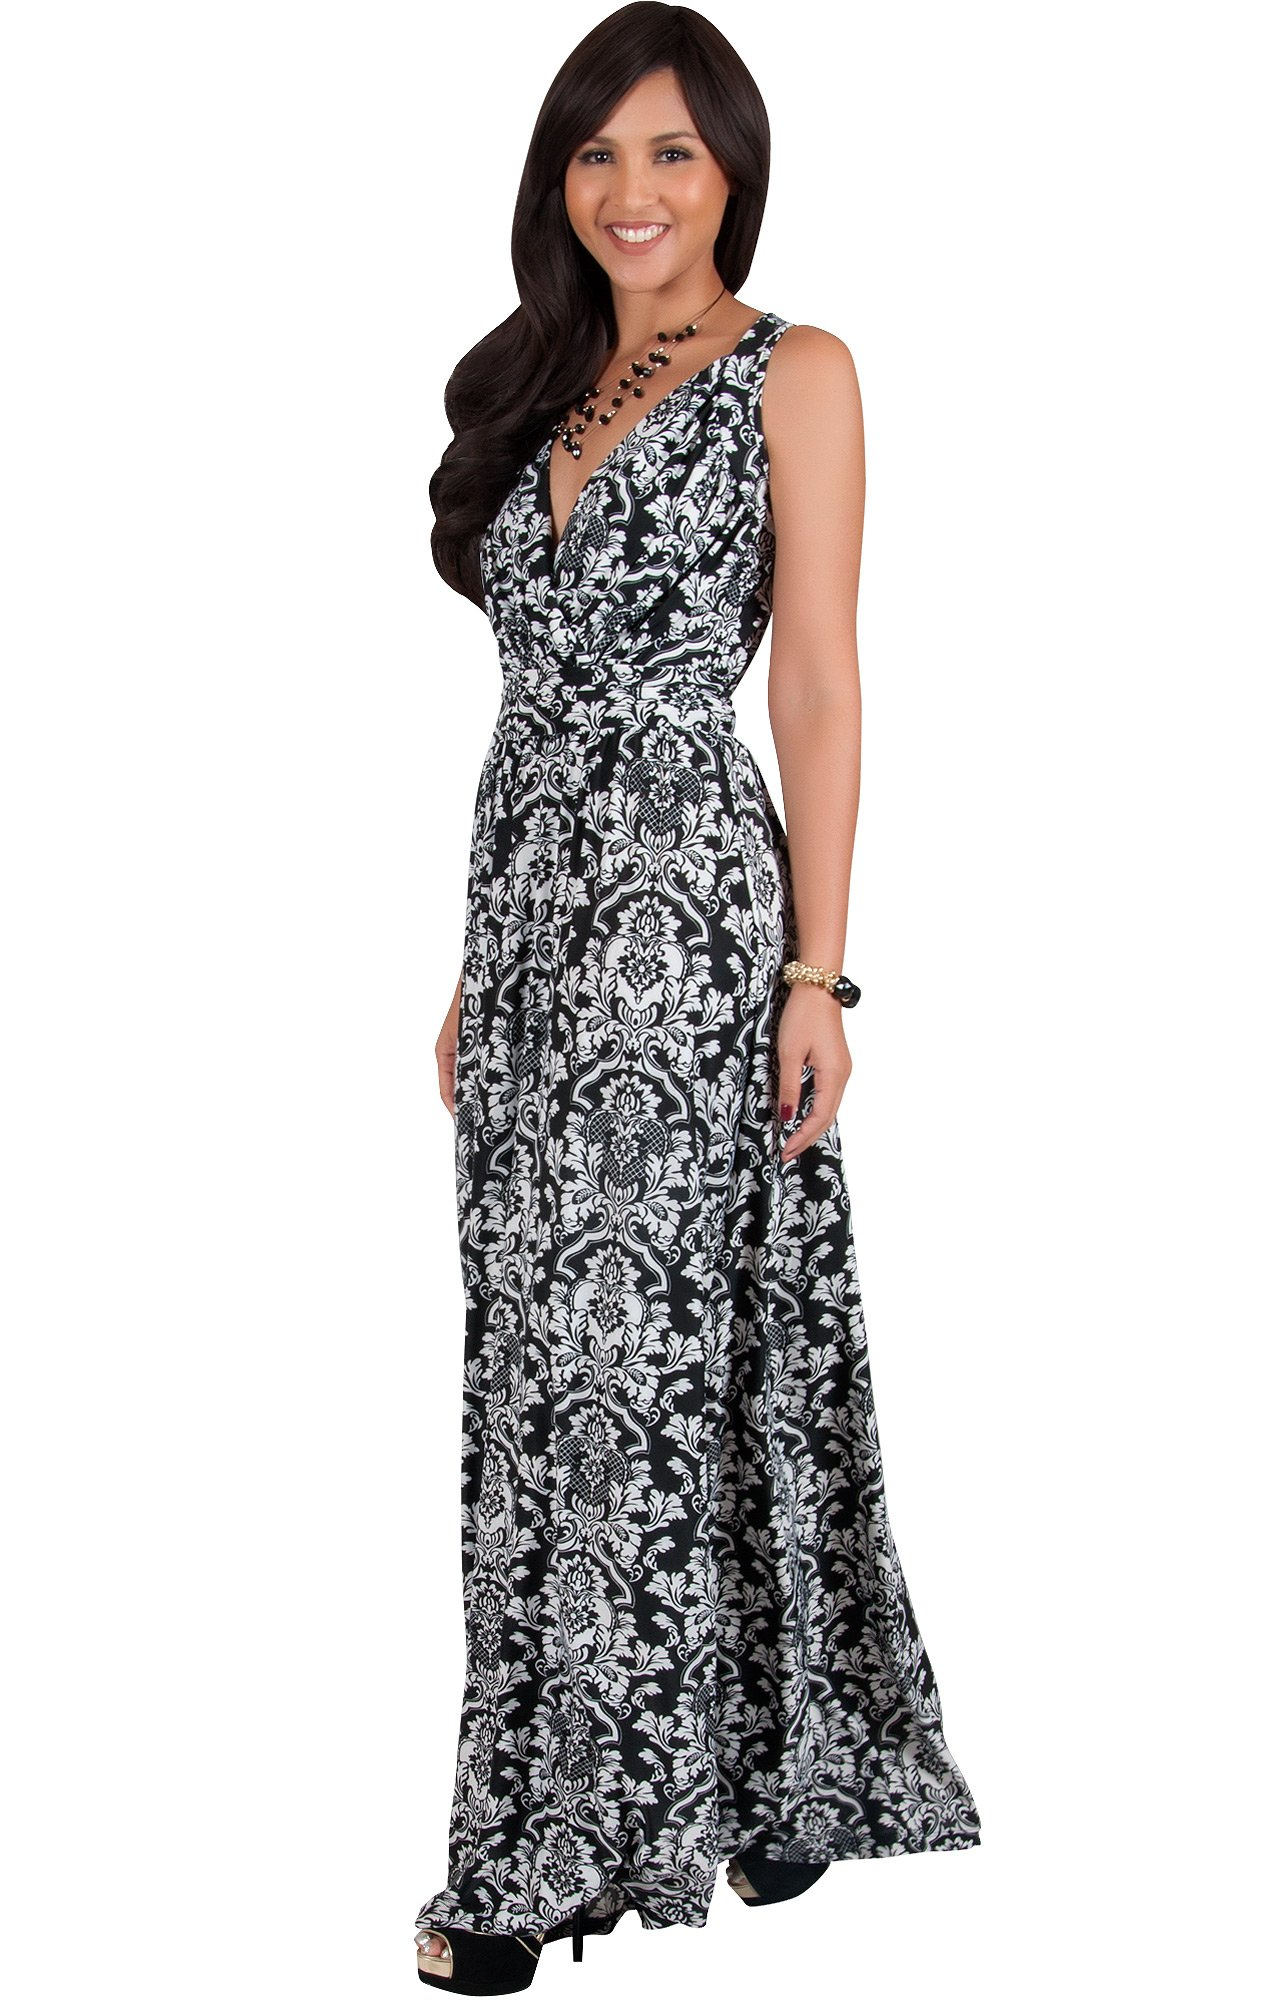 ecd2d17ac5e KOH KOH Plus Size Womens Long Sleeveless Stretchy Flowy Cute Spring Summer  Sundress Sun Vintage Casual Floral Print Work Party Jersey Sexy Gown Gowns  Maxi ...